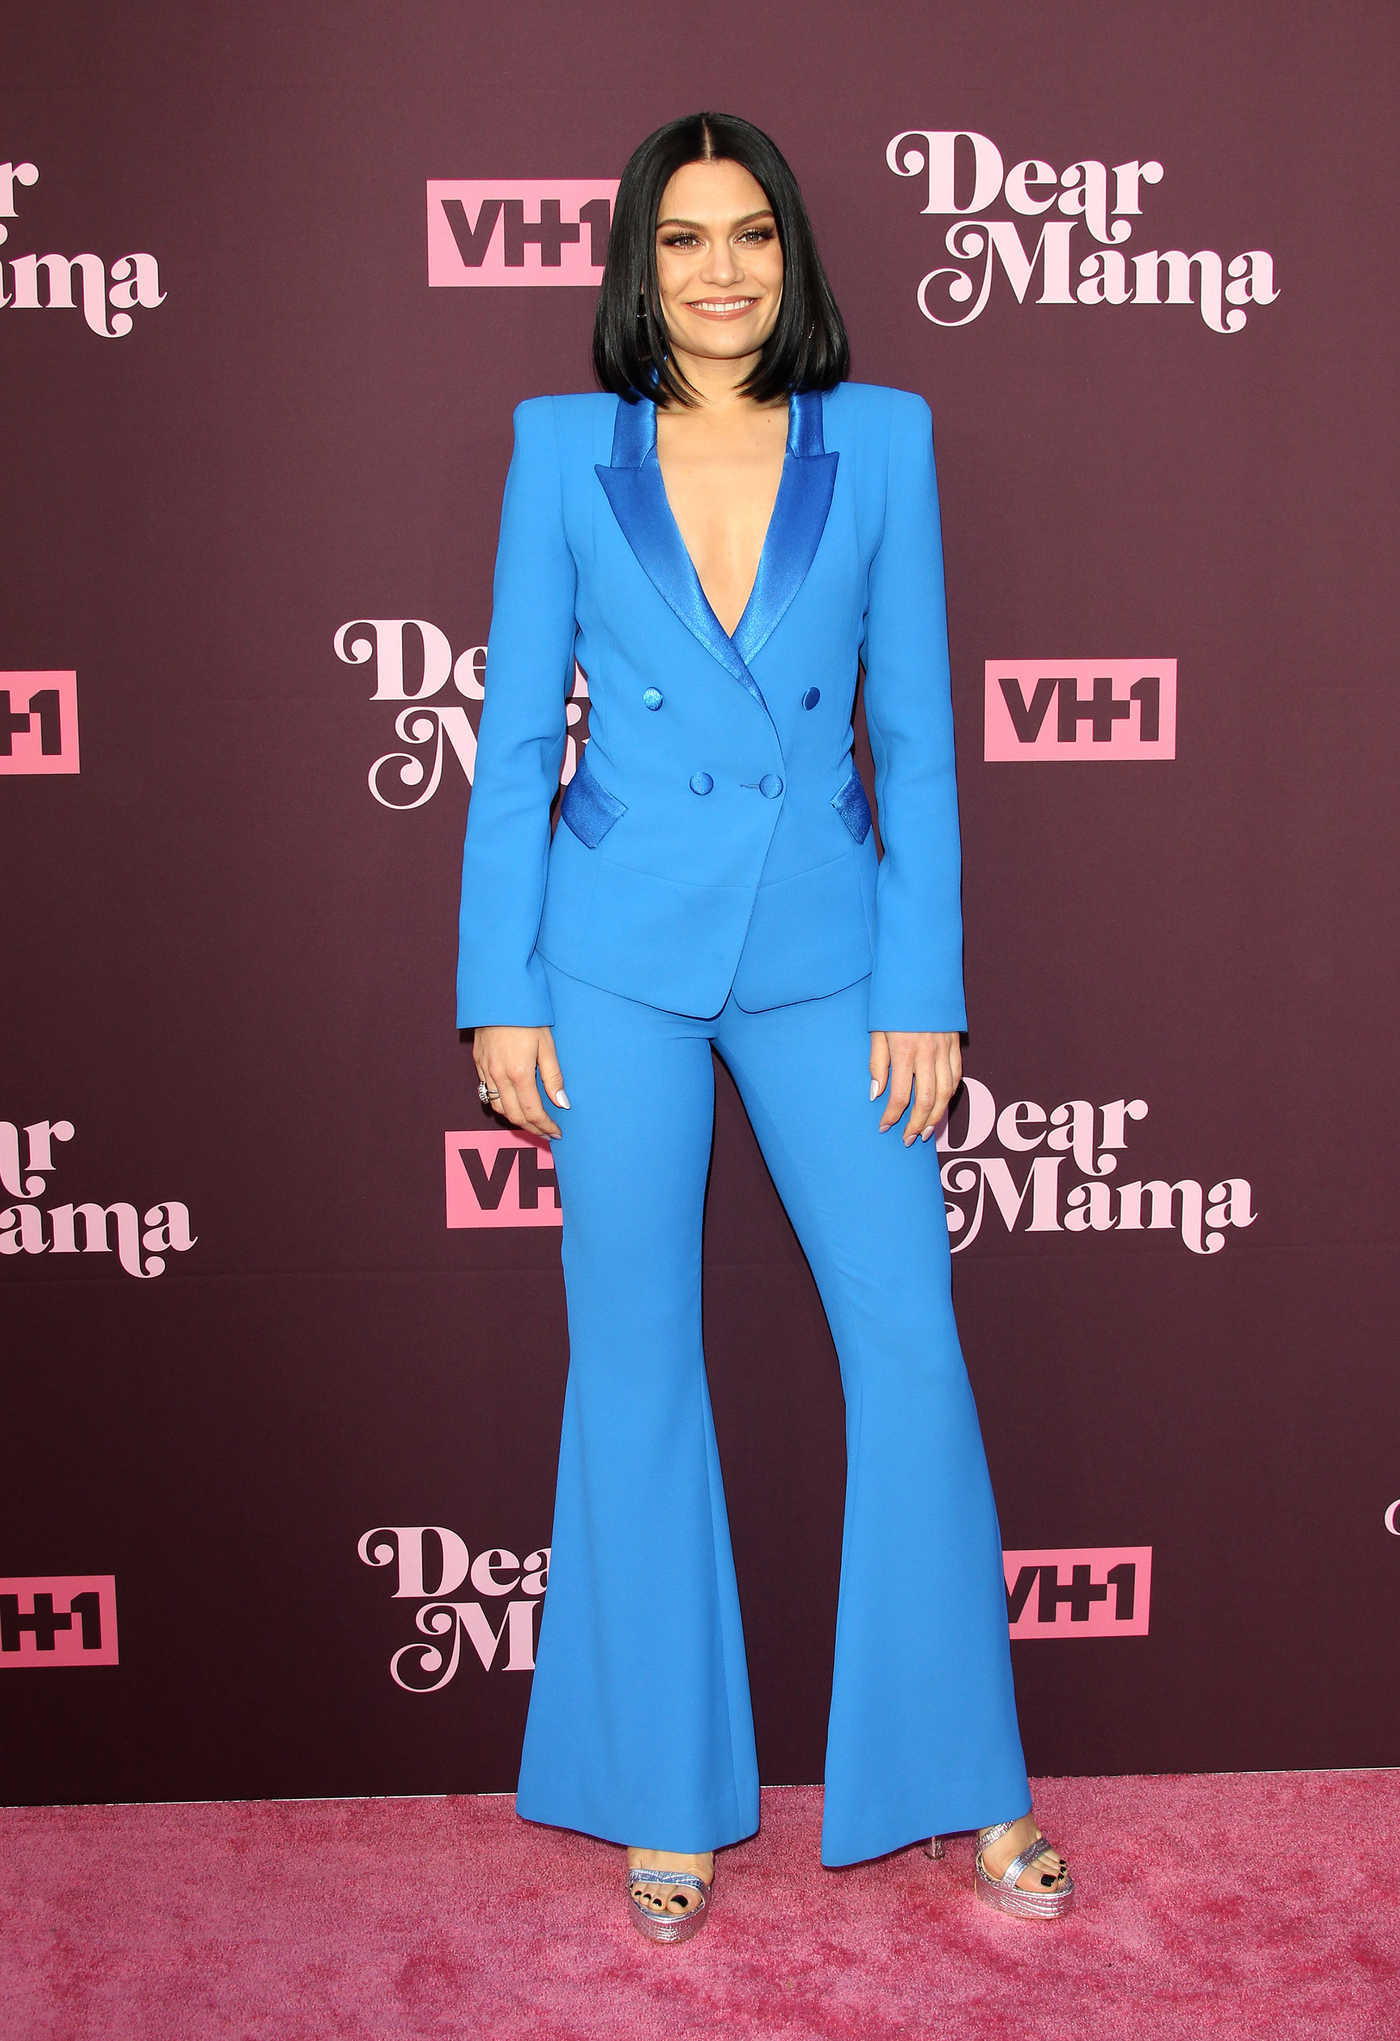 Jessie J at VH1's 3rd Annual Dear Mama an Event to Honor Moms in Los Angeles 05/03/2018